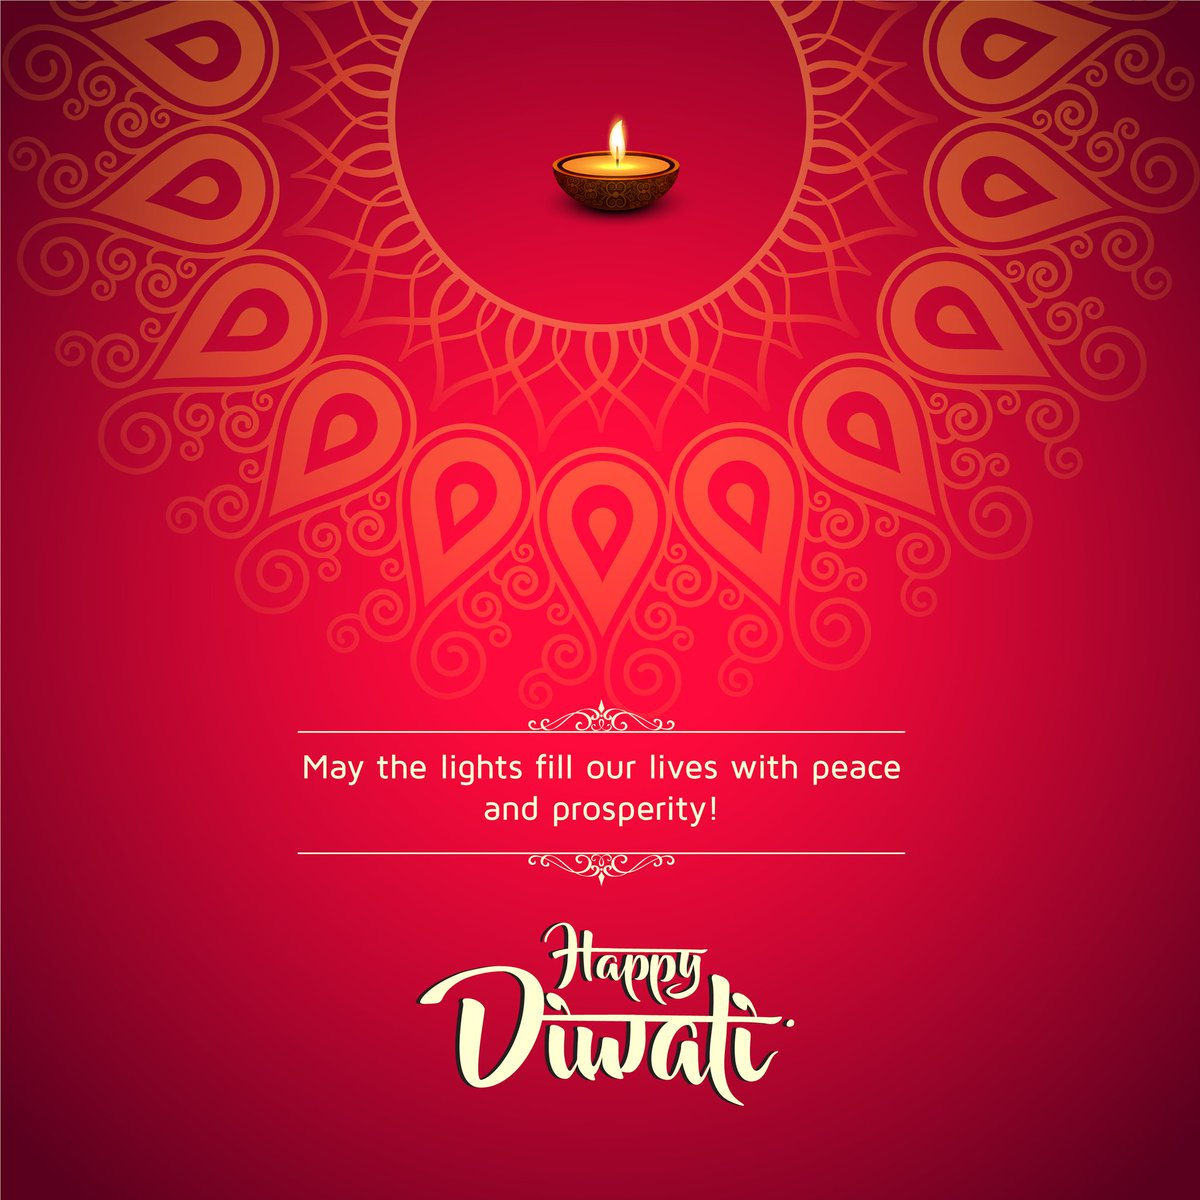 Wishing everyone a very #HappyDiwali  . May the lights lead us towards a #SwachhBharat <br>http://pic.twitter.com/b5OTsQkbuU